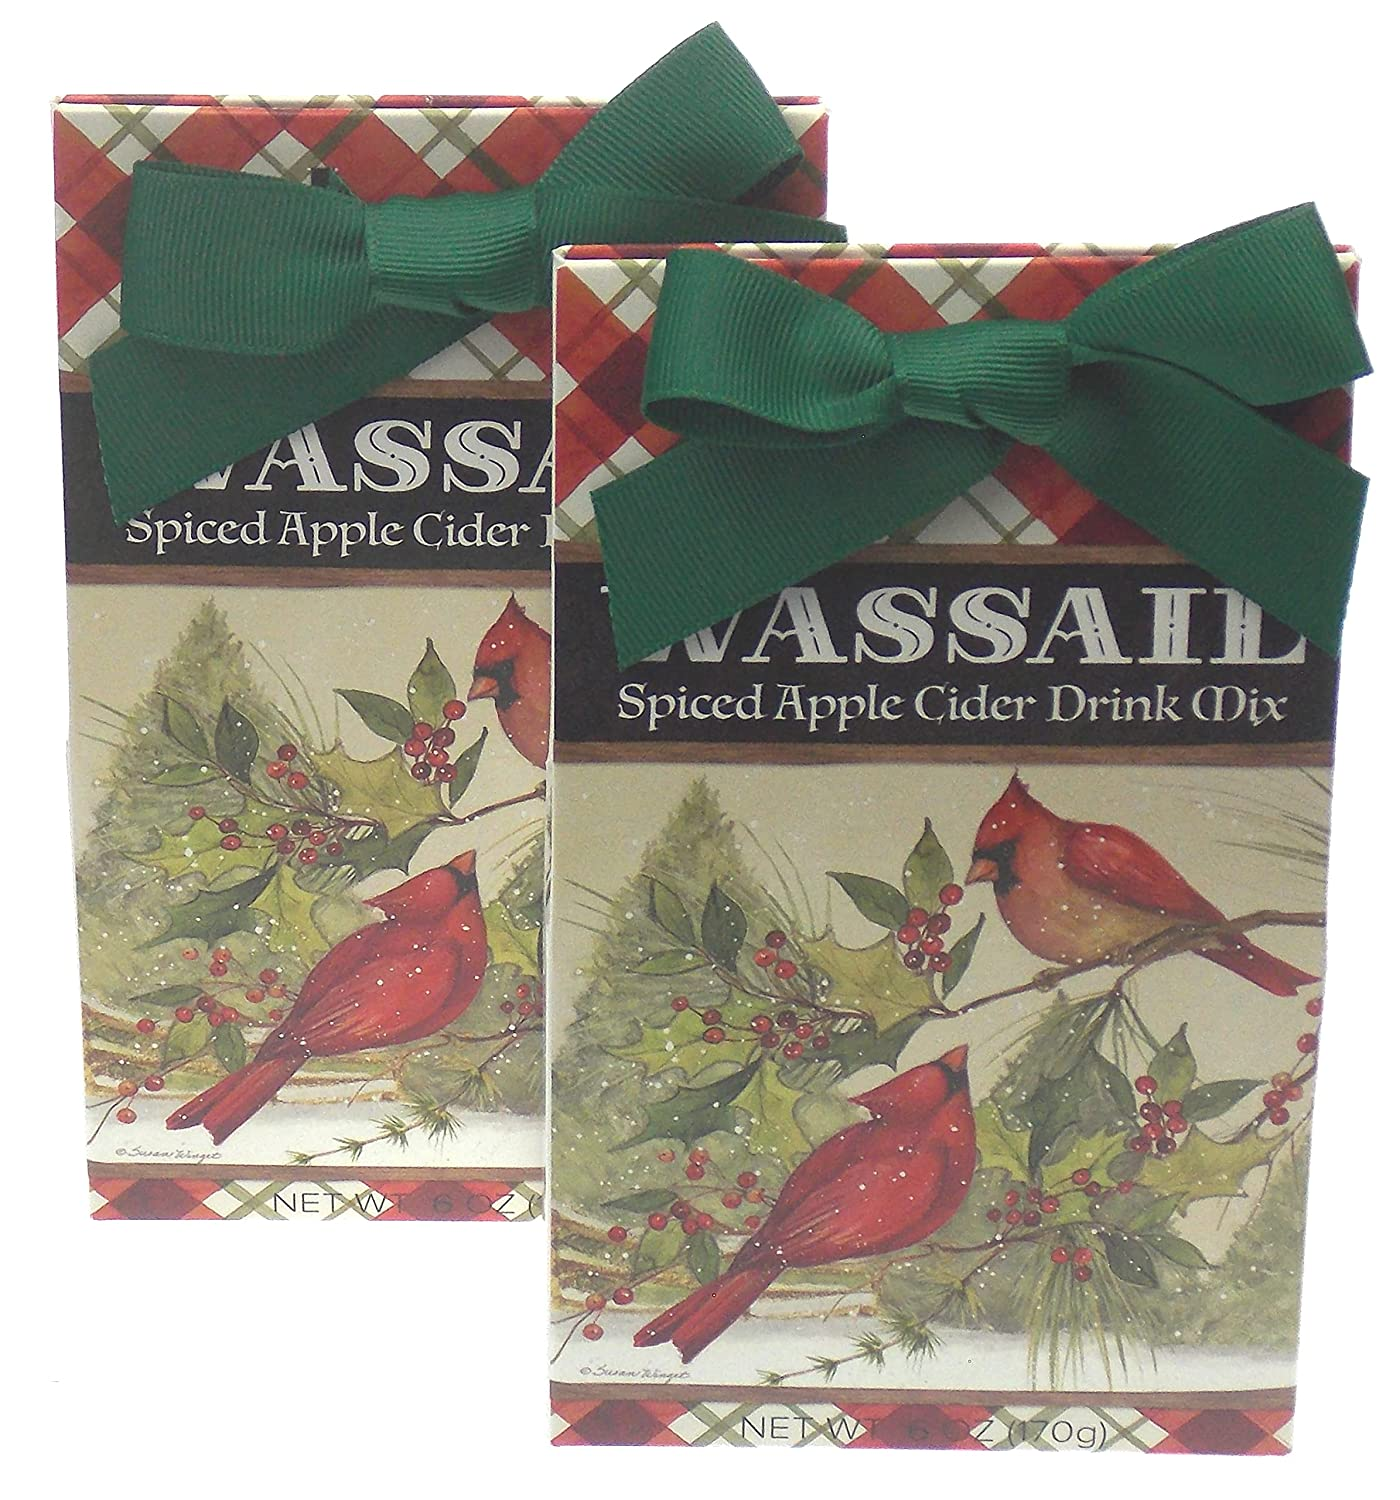 Spiced Apple Cider Wassail Gift Set Bundle - Holiday Cardinals Scene Plus a Gift Card